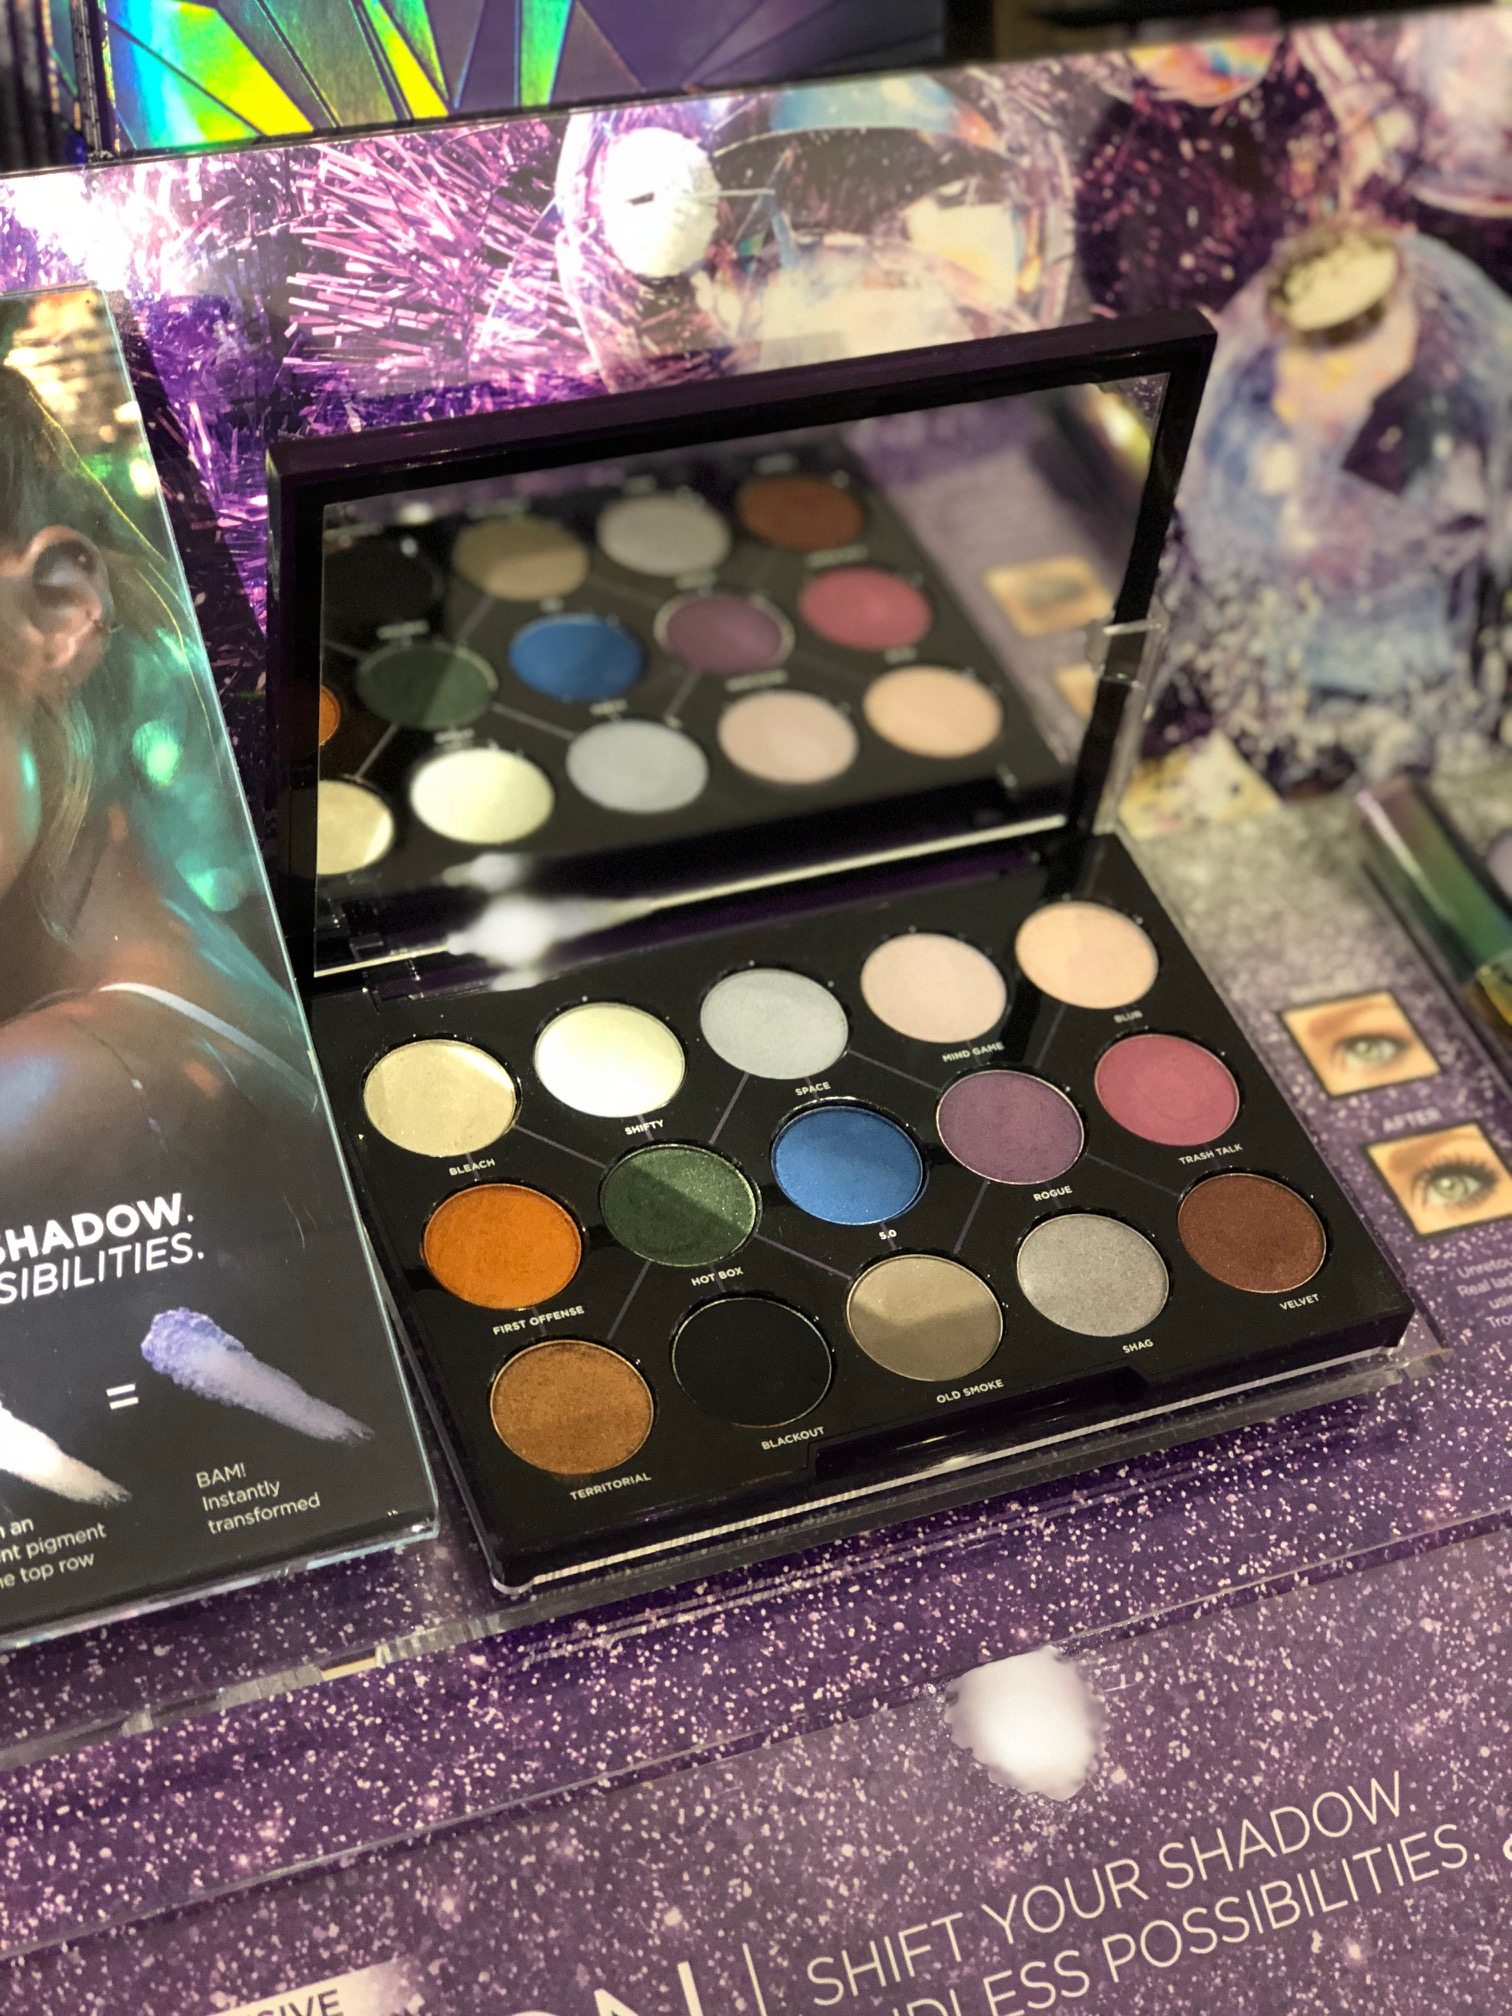 12 fabulous last-minute beauty gifts at Sephora inside JCPenney | Urban Decay Distortion Palette | Sponsor